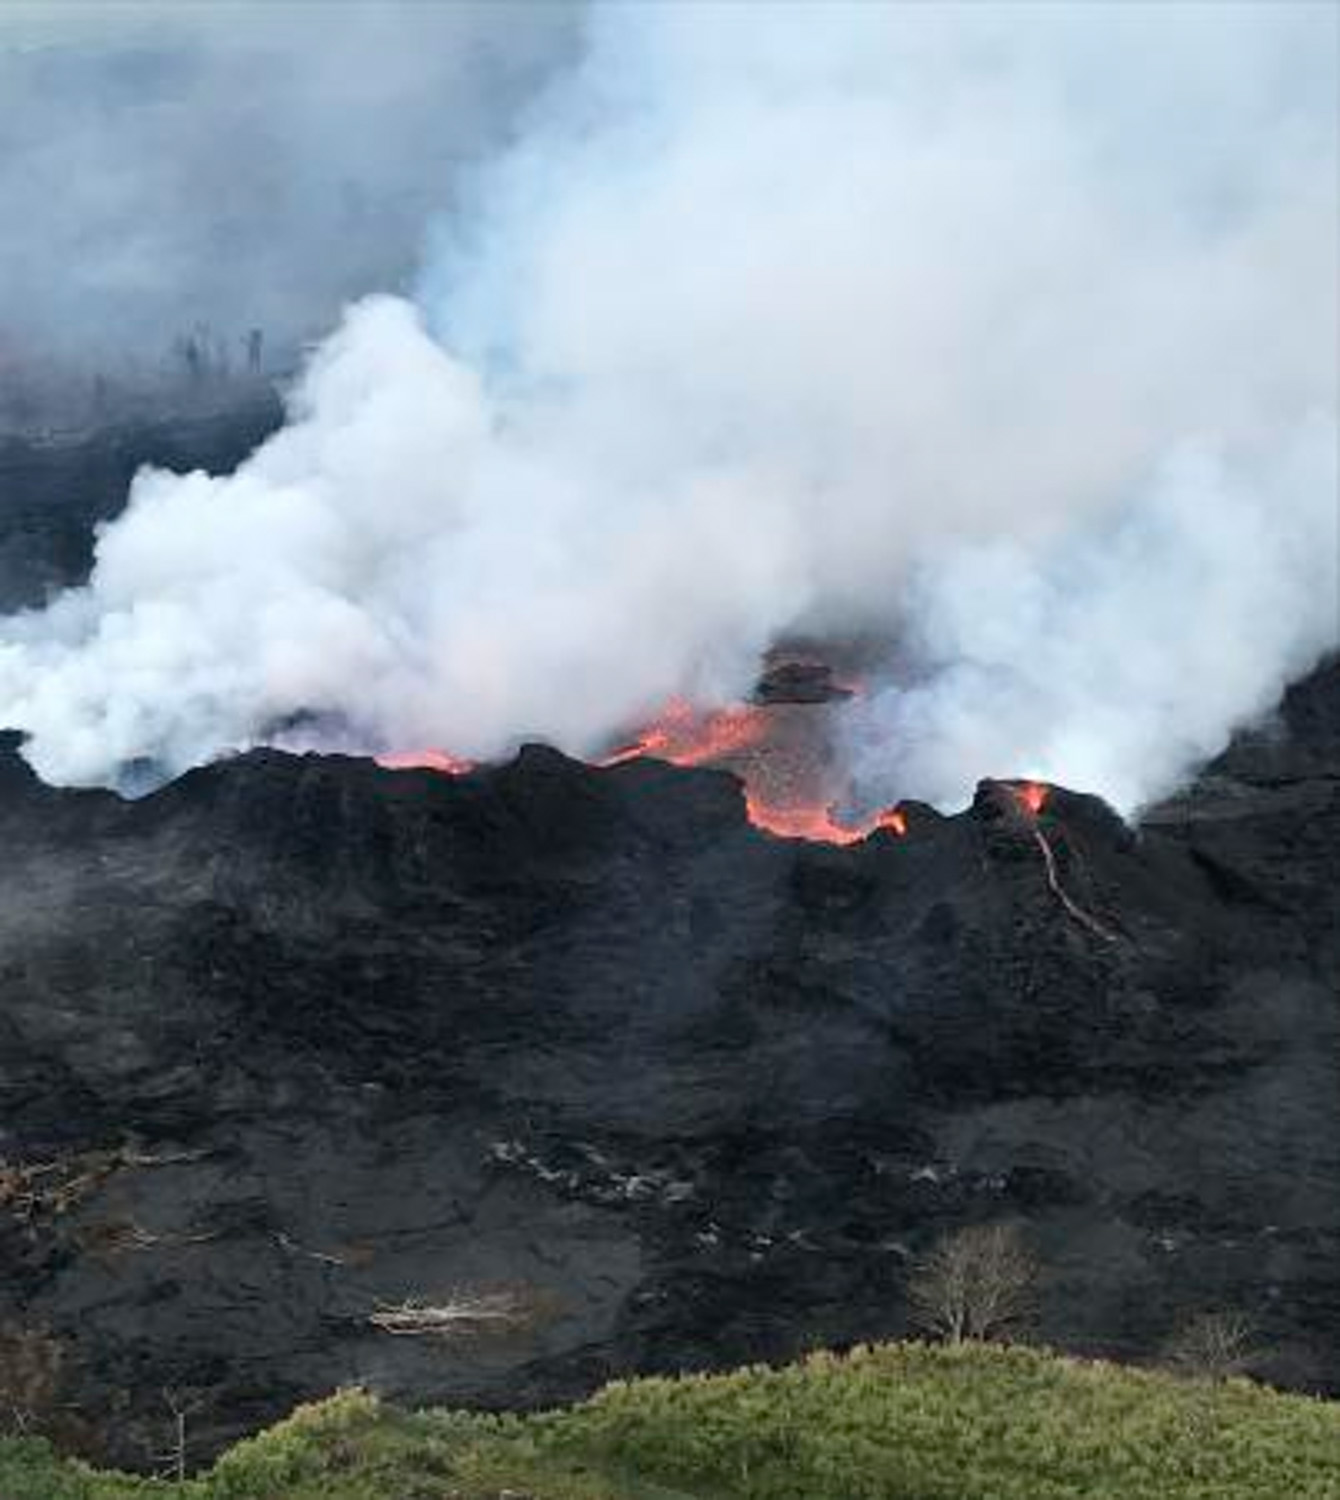 <div class='meta'><div class='origin-logo' data-origin='none'></div><span class='caption-text' data-credit='U.S. Geological Survey via AP'>An aerial view of fissure 22 looking toward the south, as Kilauea Volcano continues its eruption cycle near Pahoa on the island of Kilauea, Hawaii.</span></div>